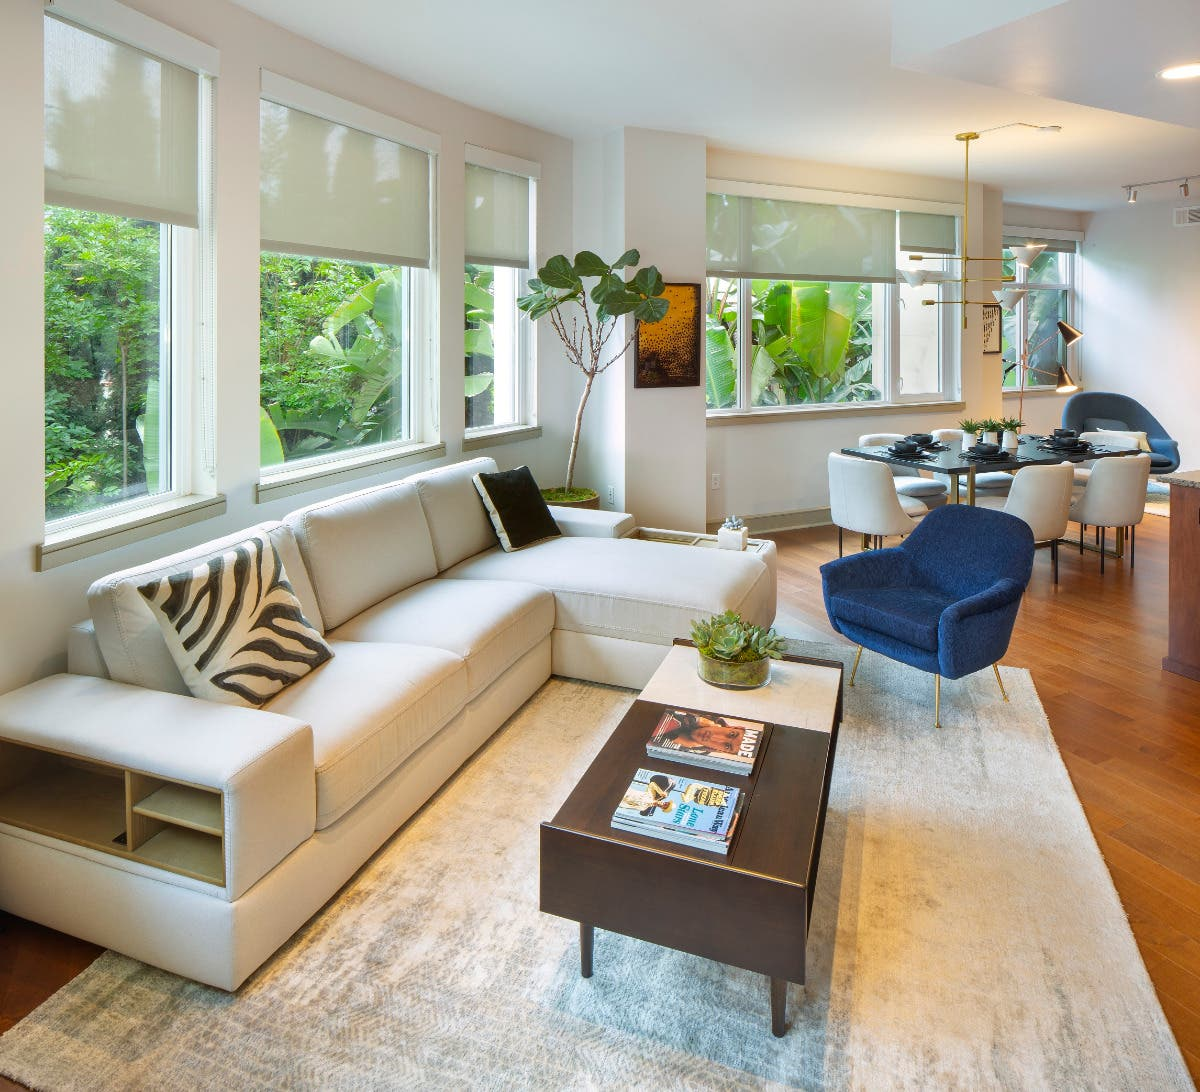 Luxury Two-Bedroom Apartments In Westwood - Westwood, CA Patch